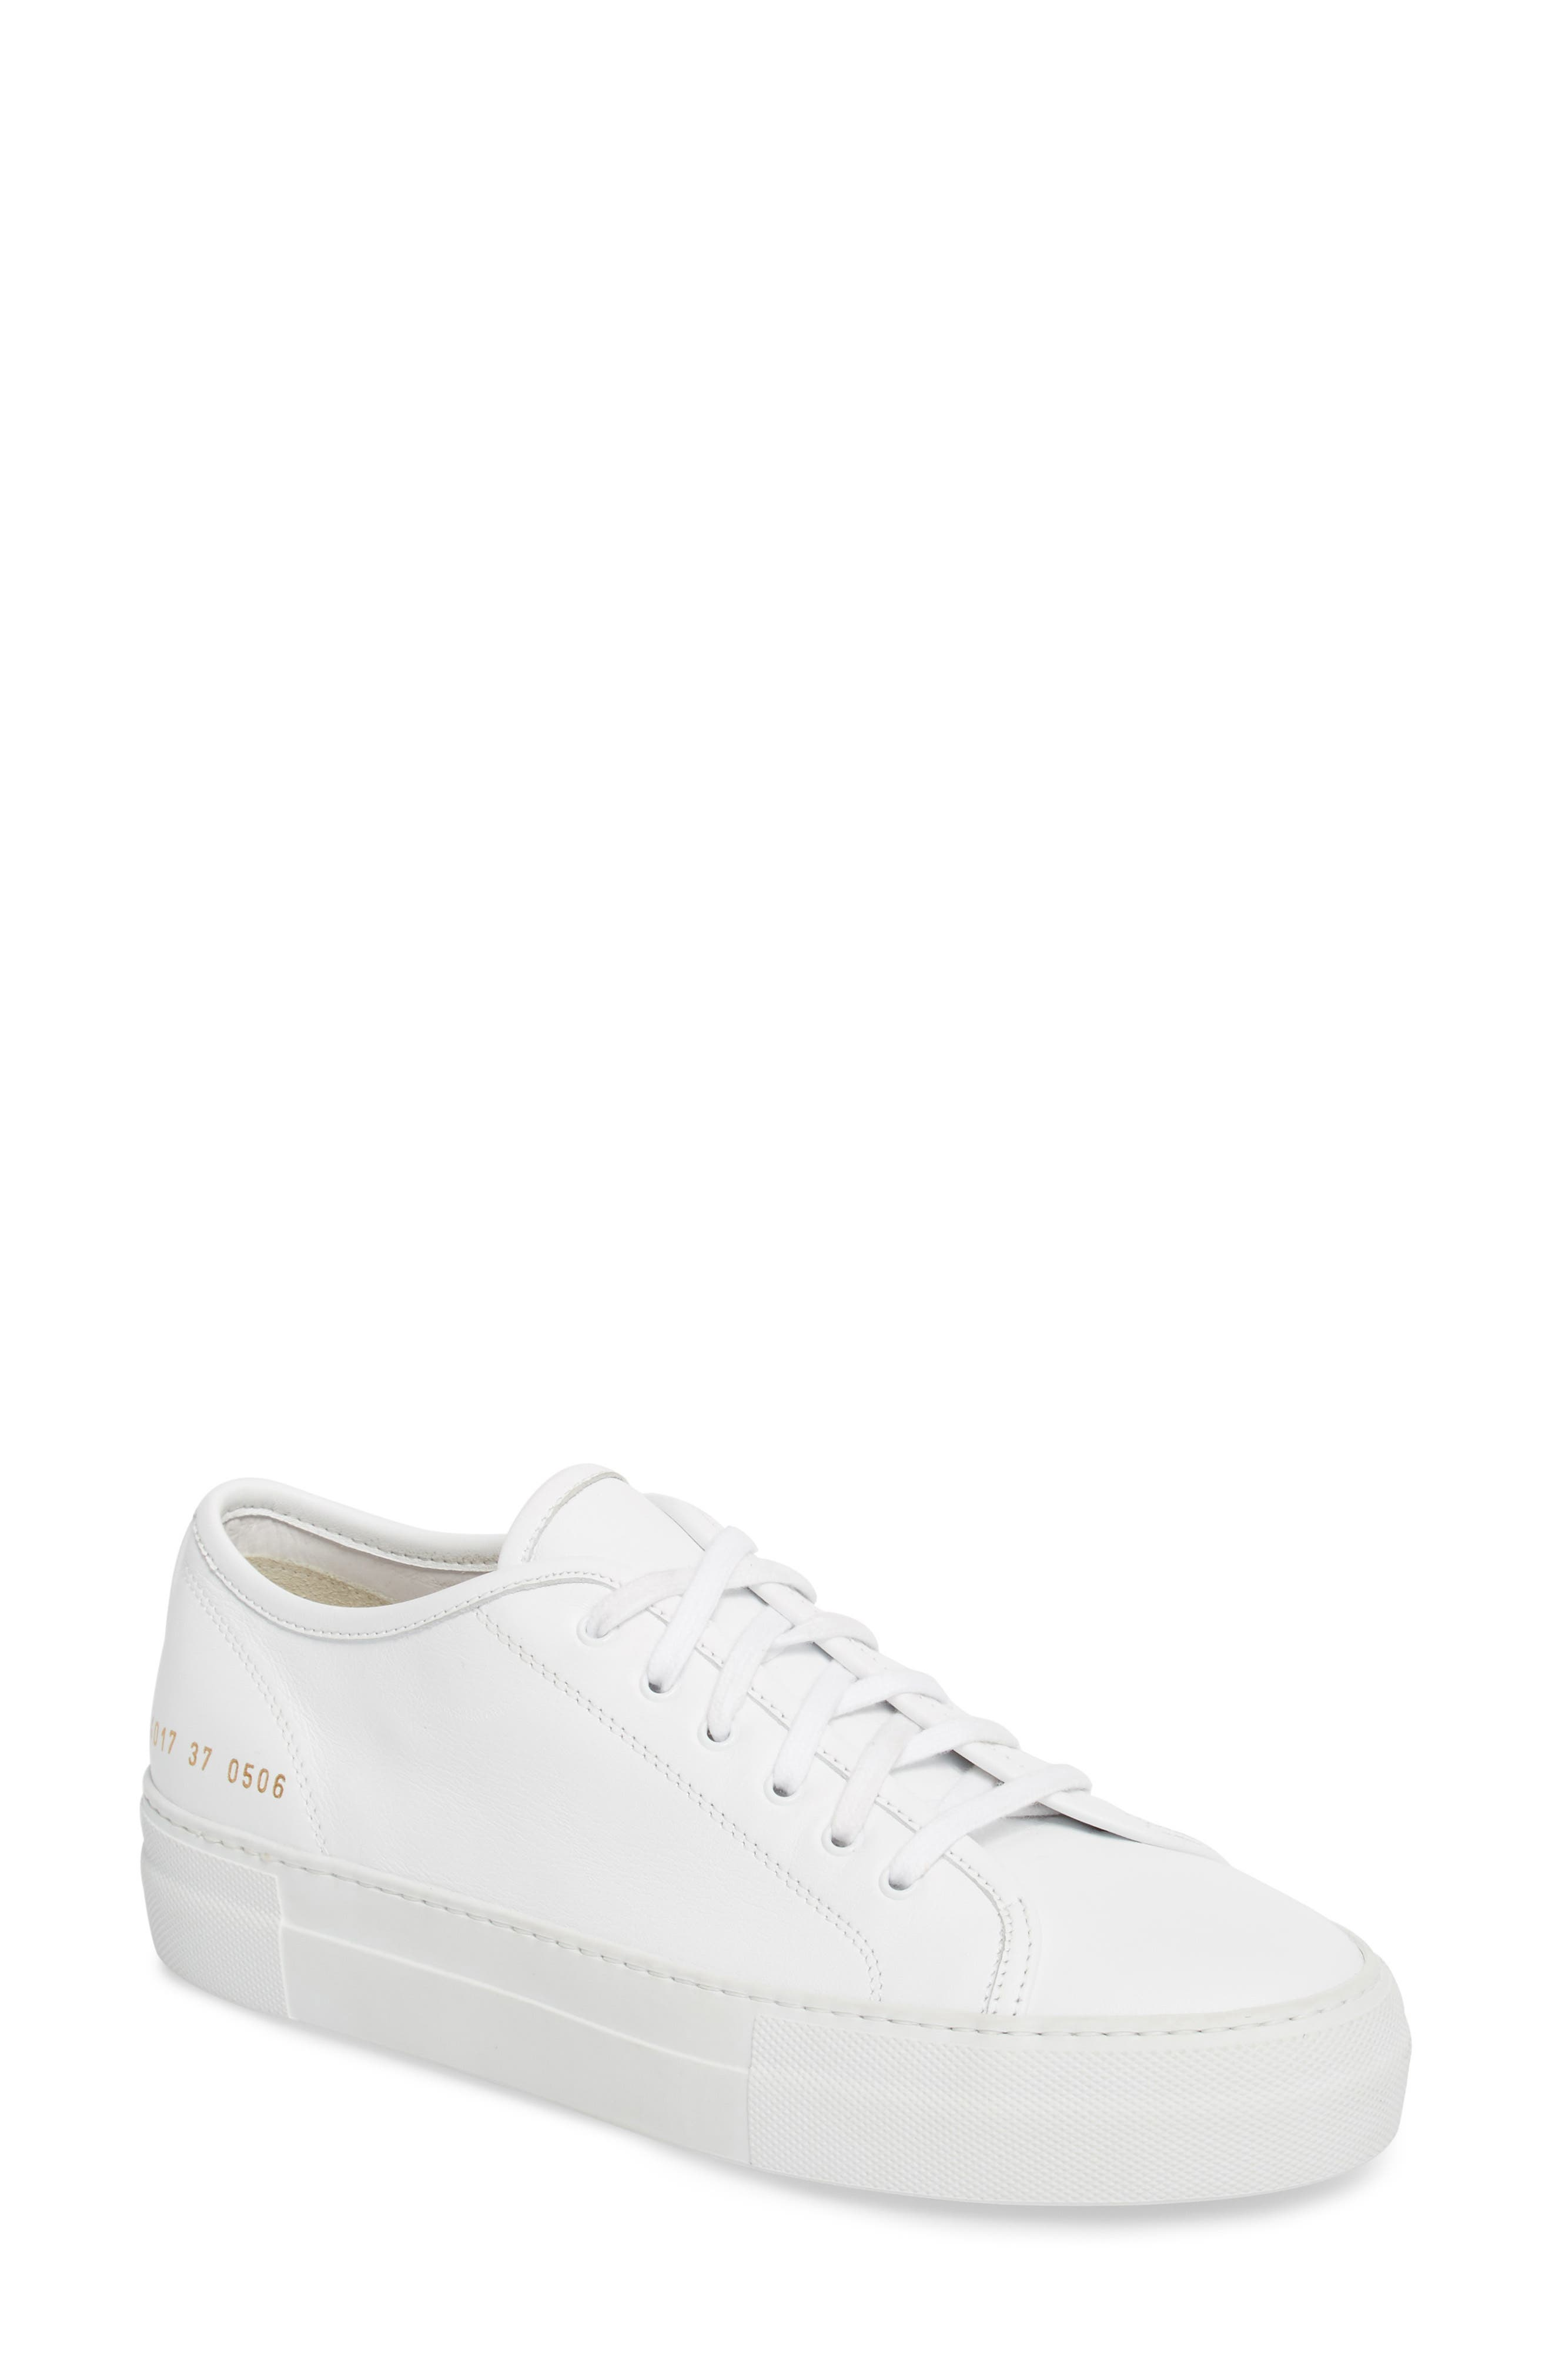 Common Projects Tournament Low Top Sneaker (Women)